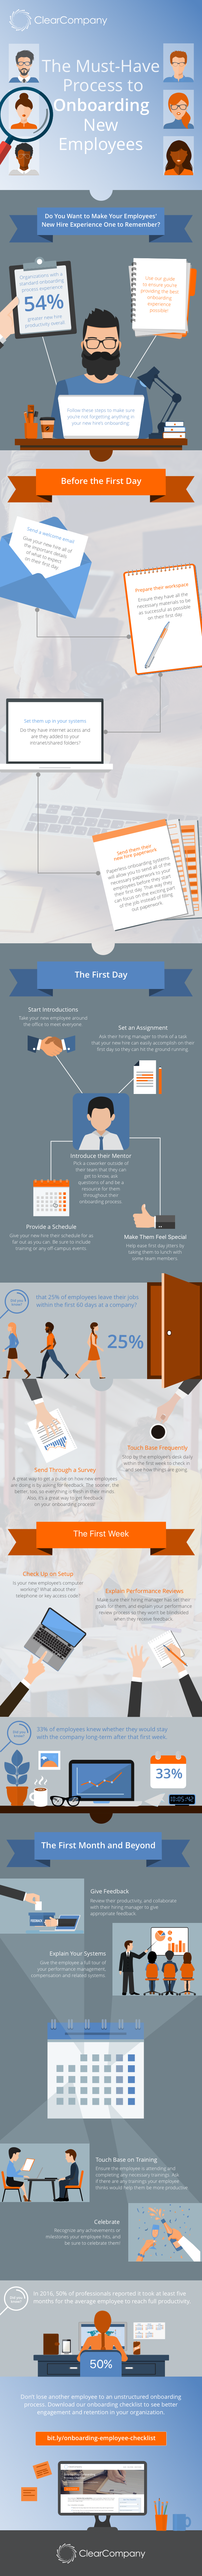 ClearCompany-The-Must-Have-Process-To-Onboarding-New-Employees_infographic.png